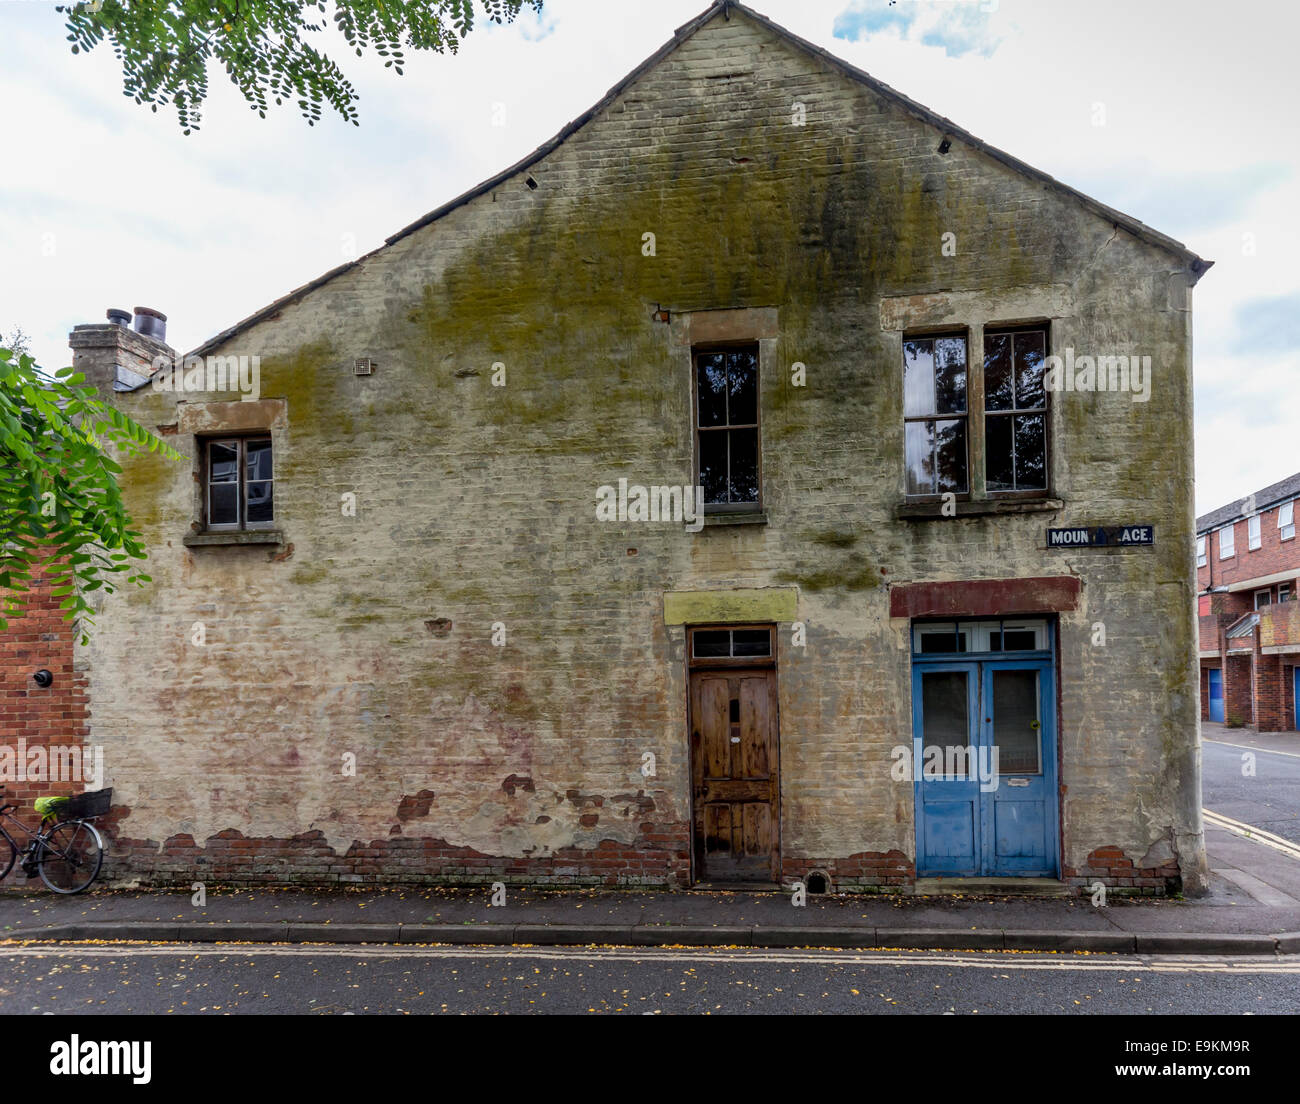 Old house in need of some TLC and refurbishment with mould growing on the walls - Stock Image